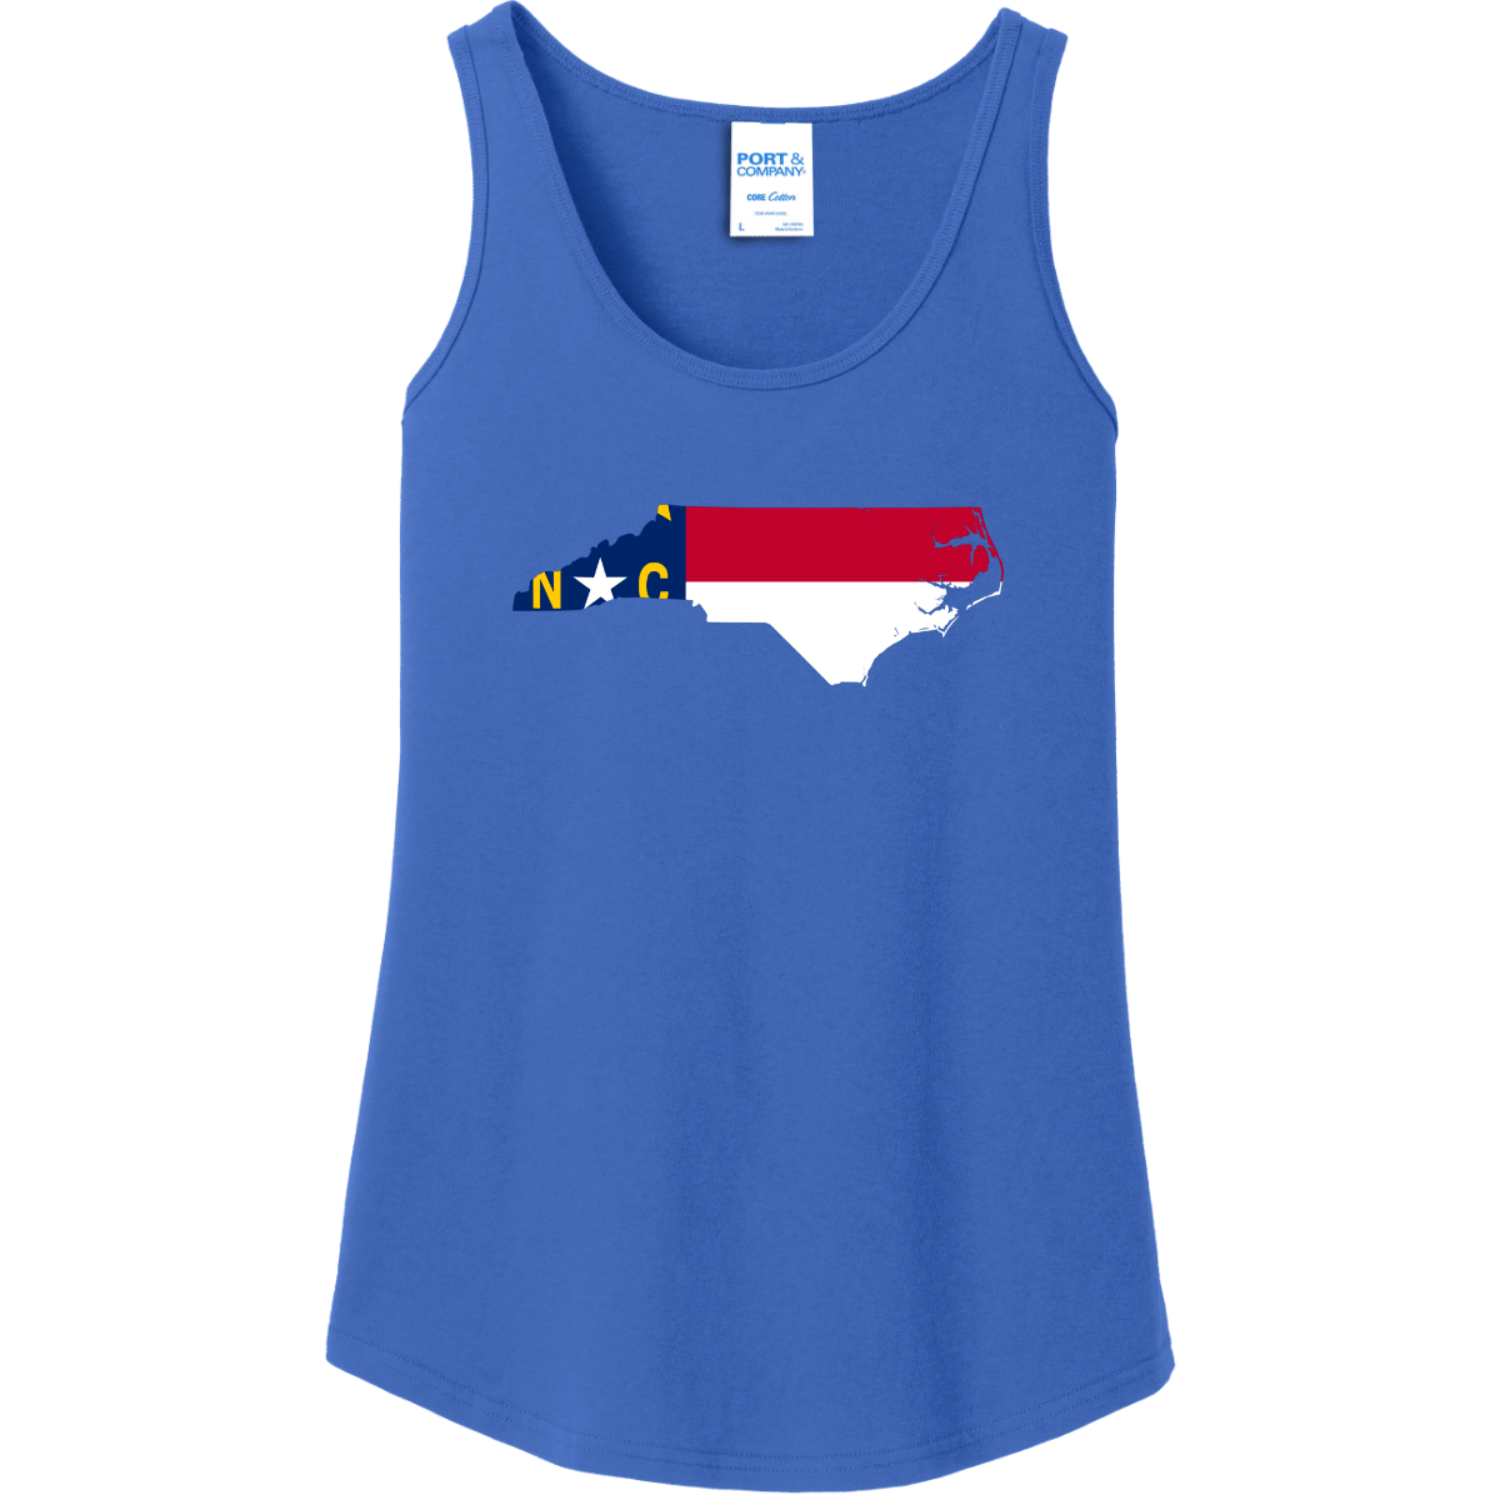 North Carolina State Flag Tank Top For Women Royal Port And Company Ladies Tank Top